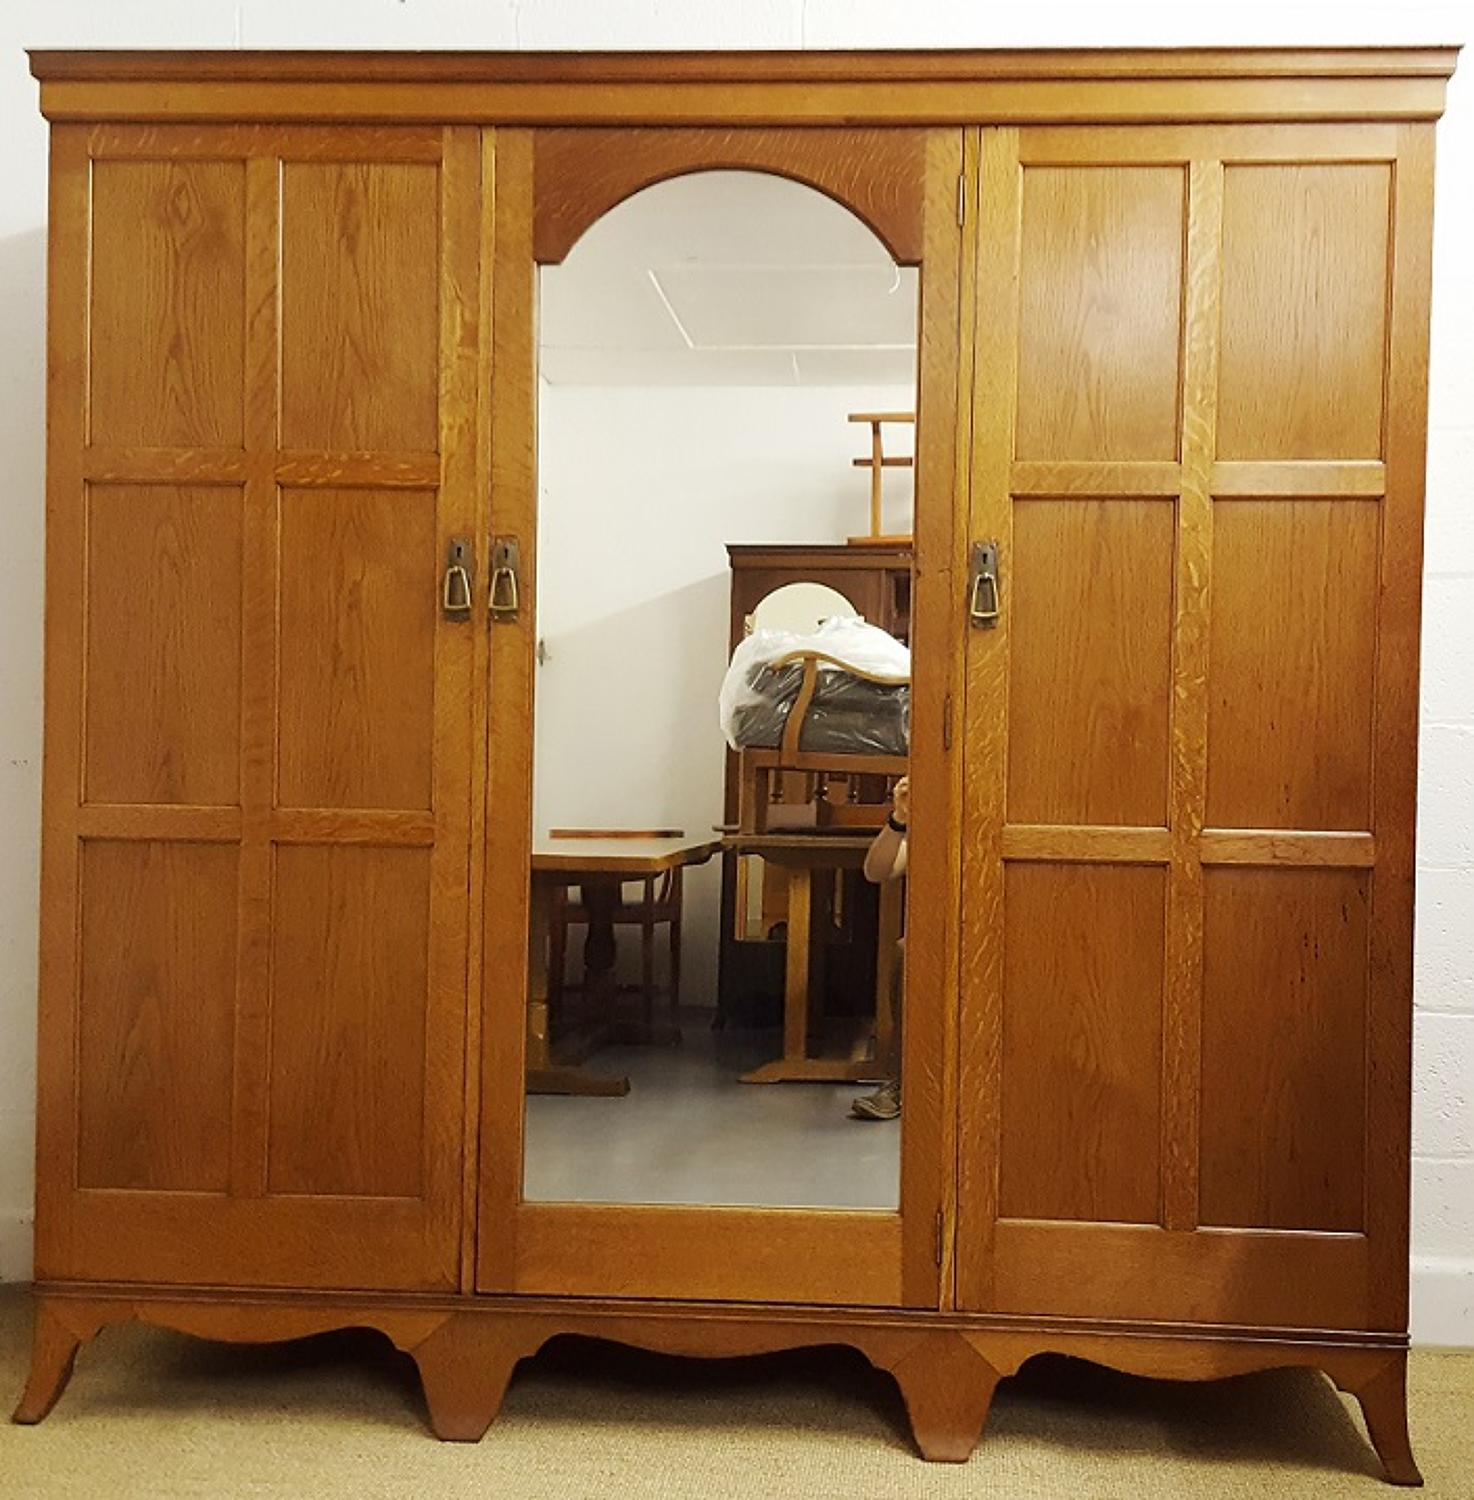 HEALS ARTS AND CRAFTS 'YEWDEN' OAK WARDROBE C1904